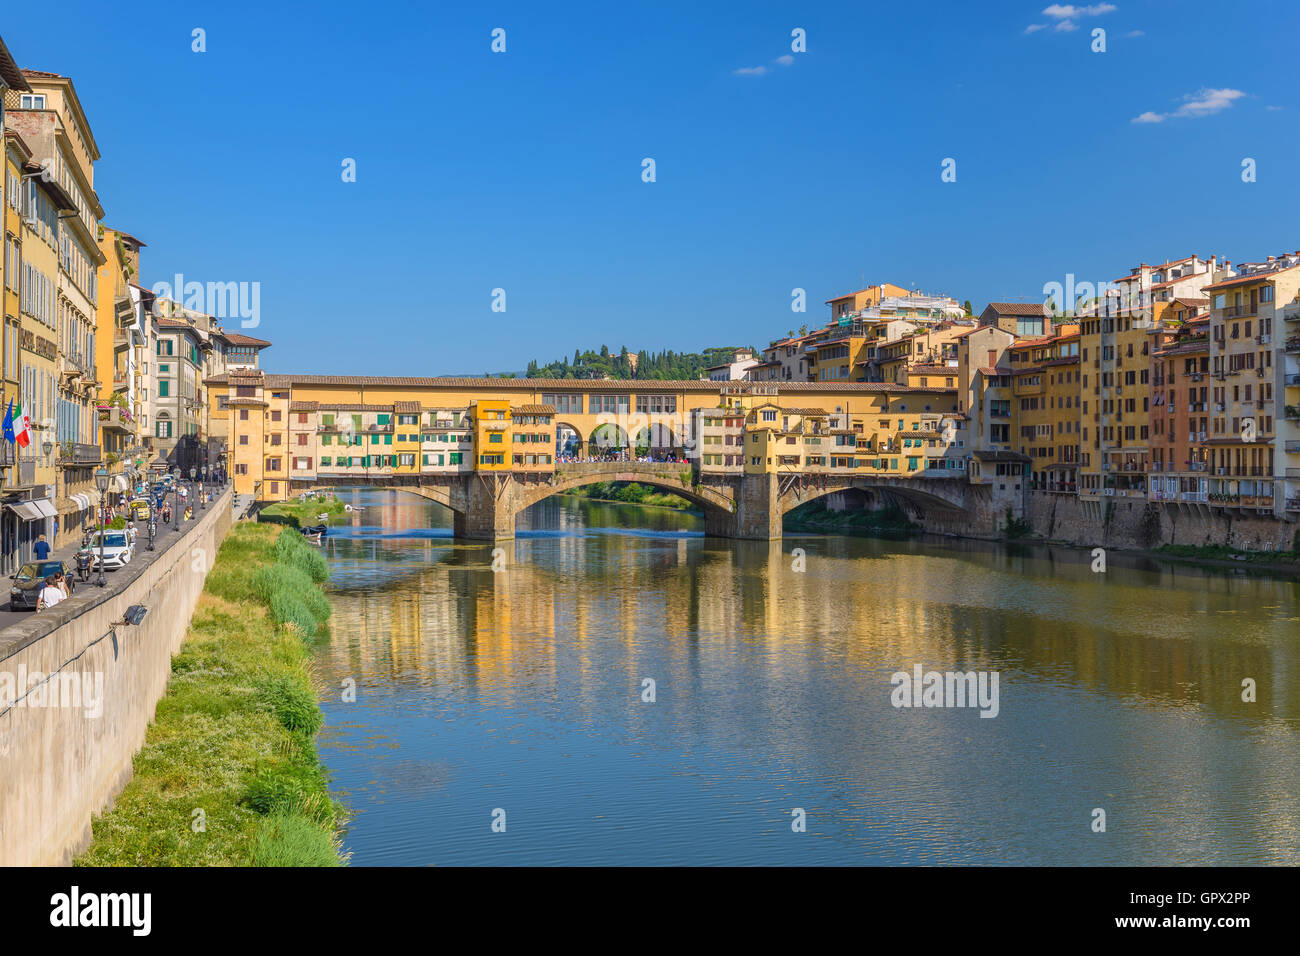 Ponte Vecchio and city skyline, Florence, Italy - Stock Image